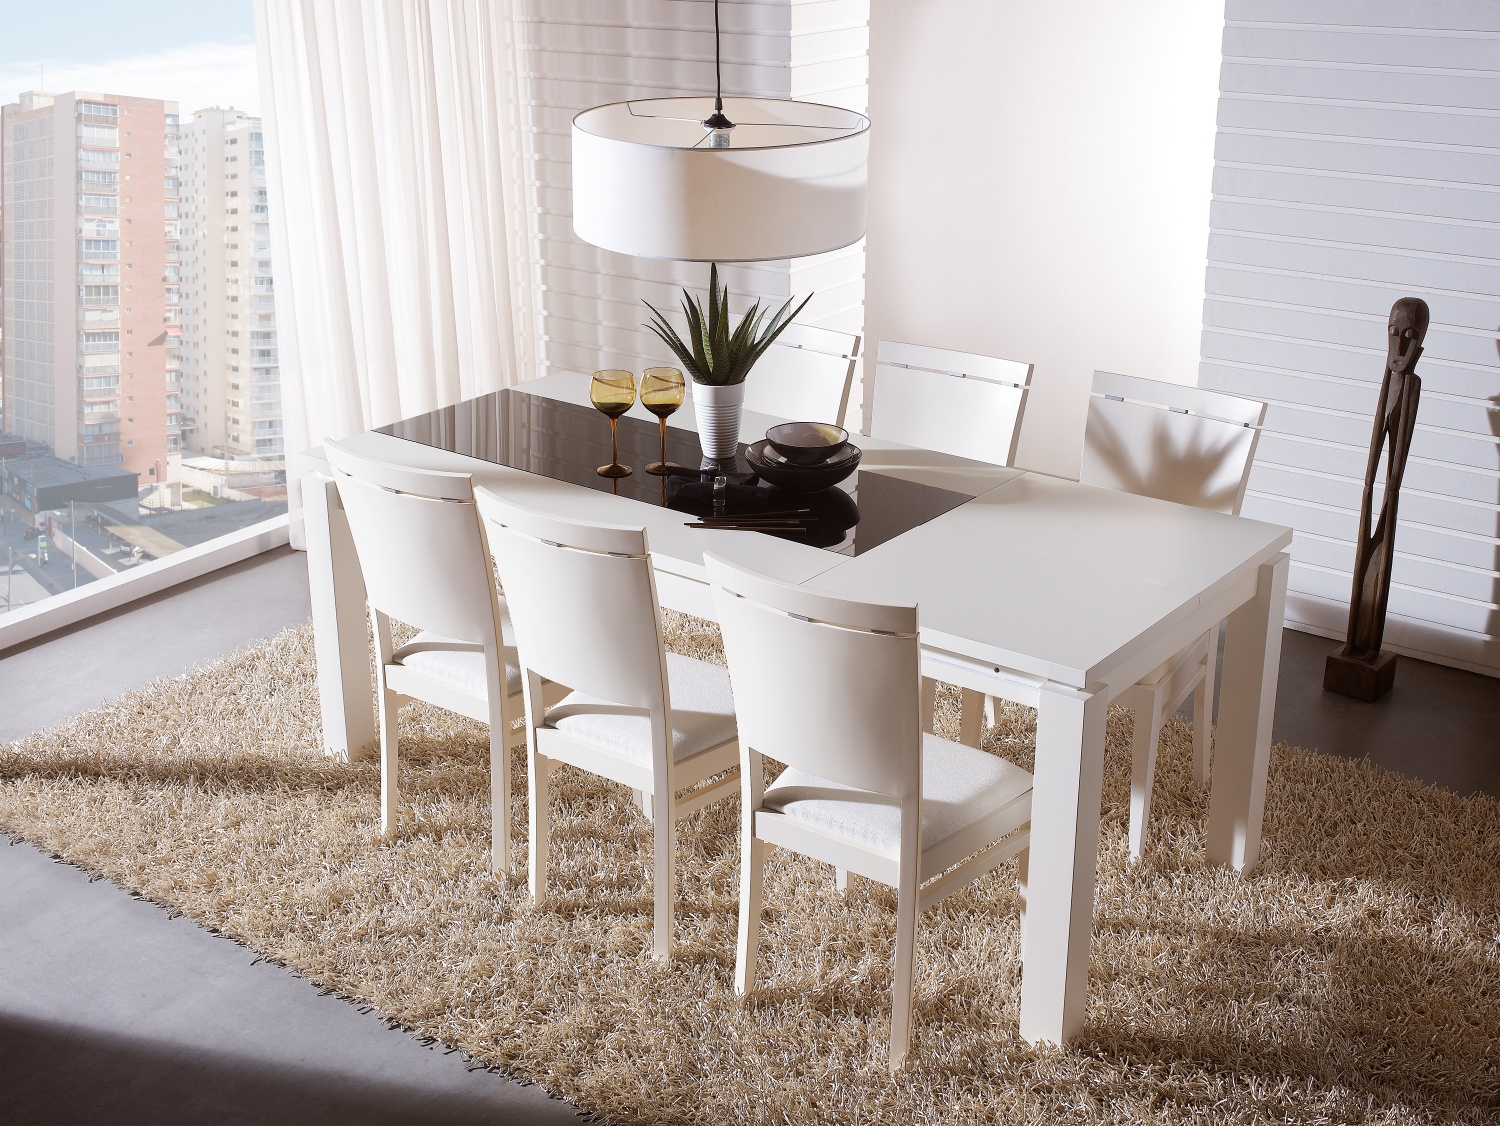 white dining table furnishing dining room ashley furniture round dining room sets ashleywhite dining table furnishing